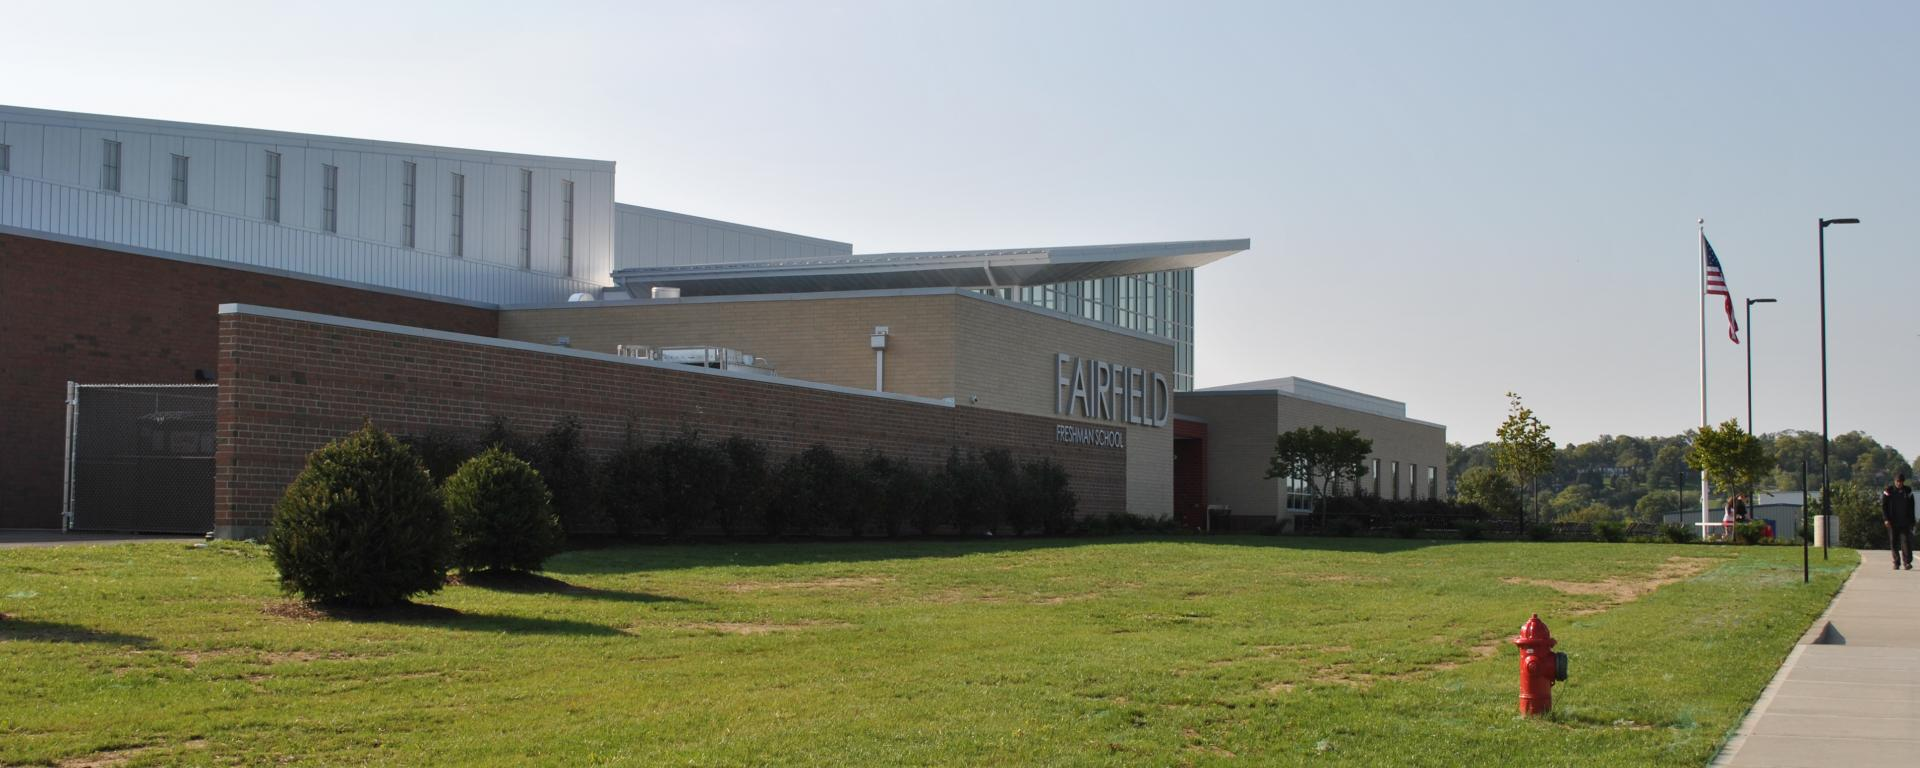 Fairfield Freshman School